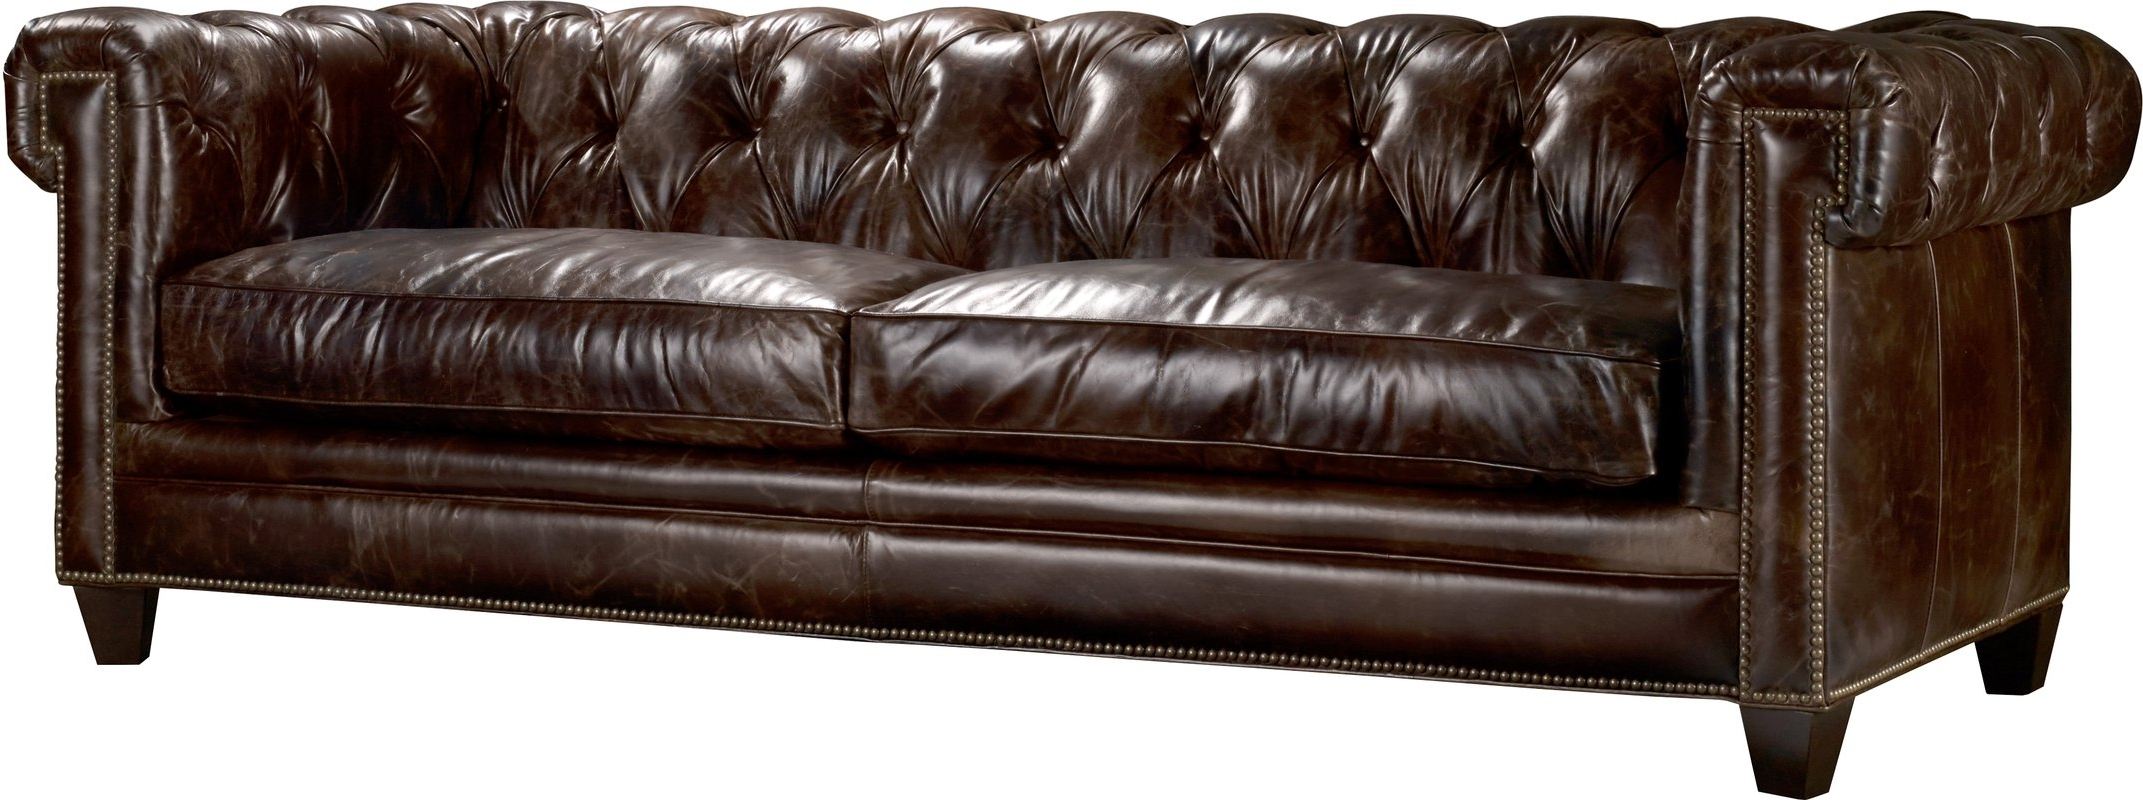 Chesterfield Sofas Regarding Famous Hooker Furniture Imperial Regal Stationary Leather Chesterfield (View 11 of 15)